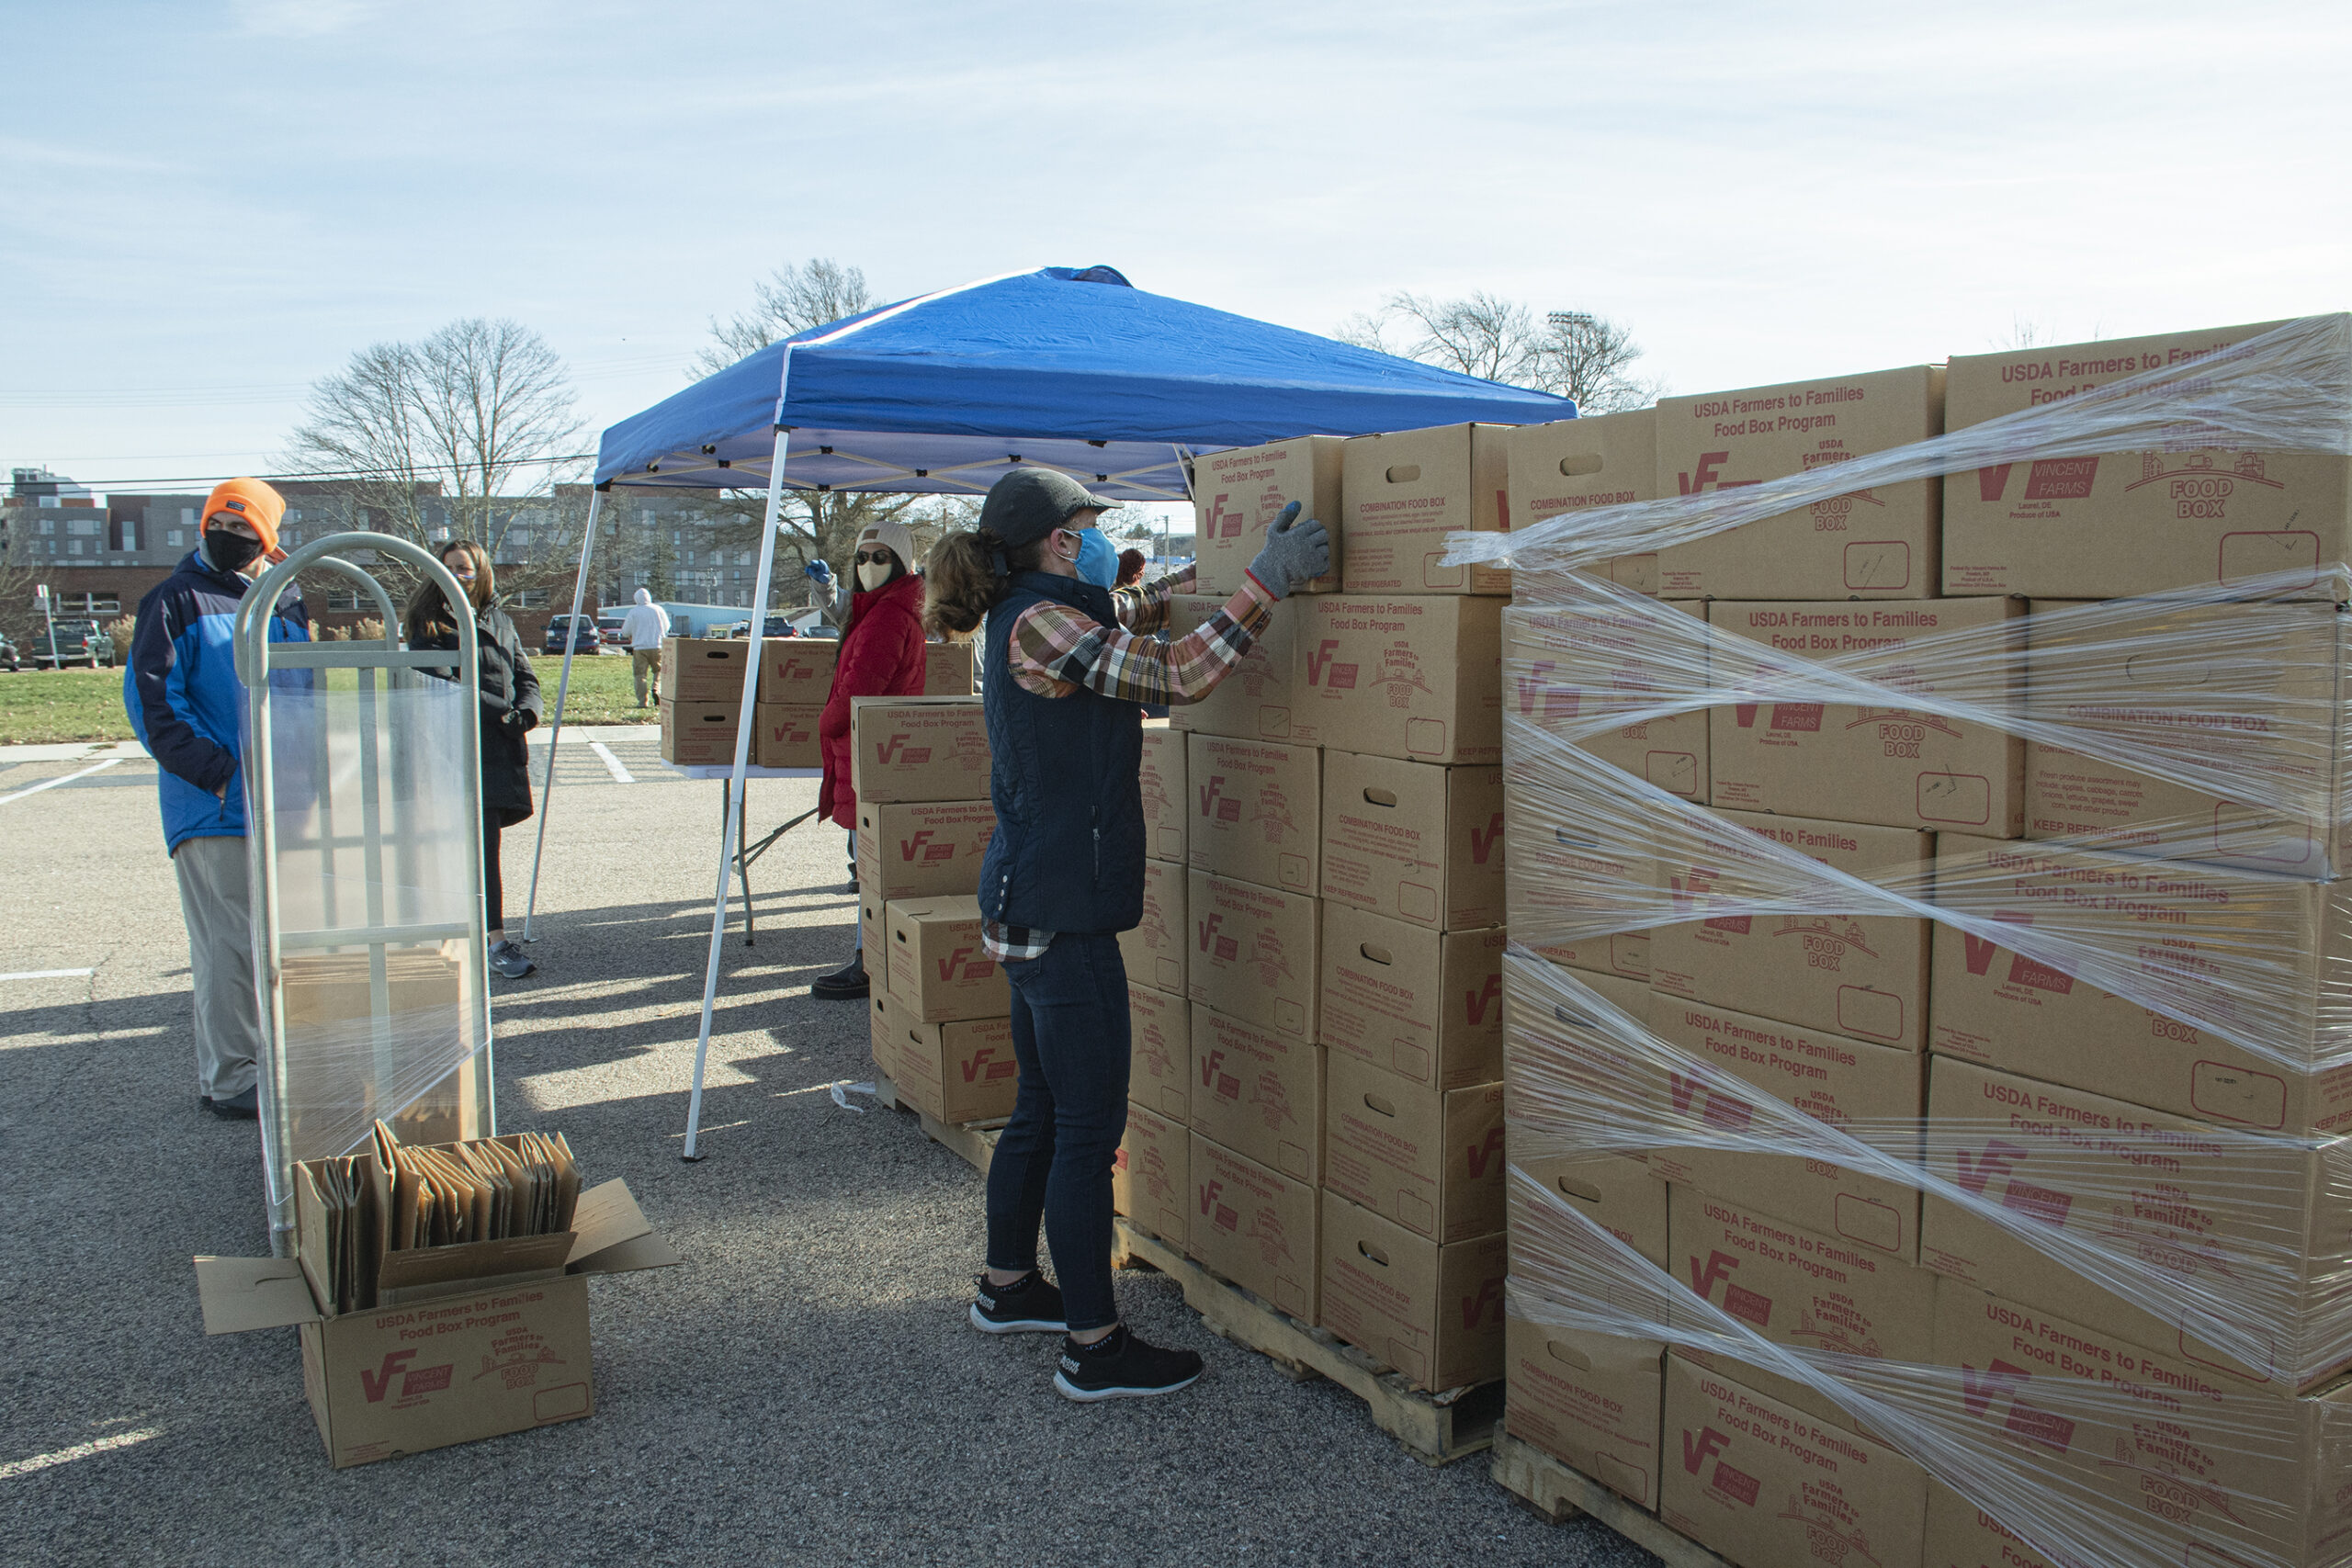 URI students and staff distribute USDA Farmers to Families food boxes this fall